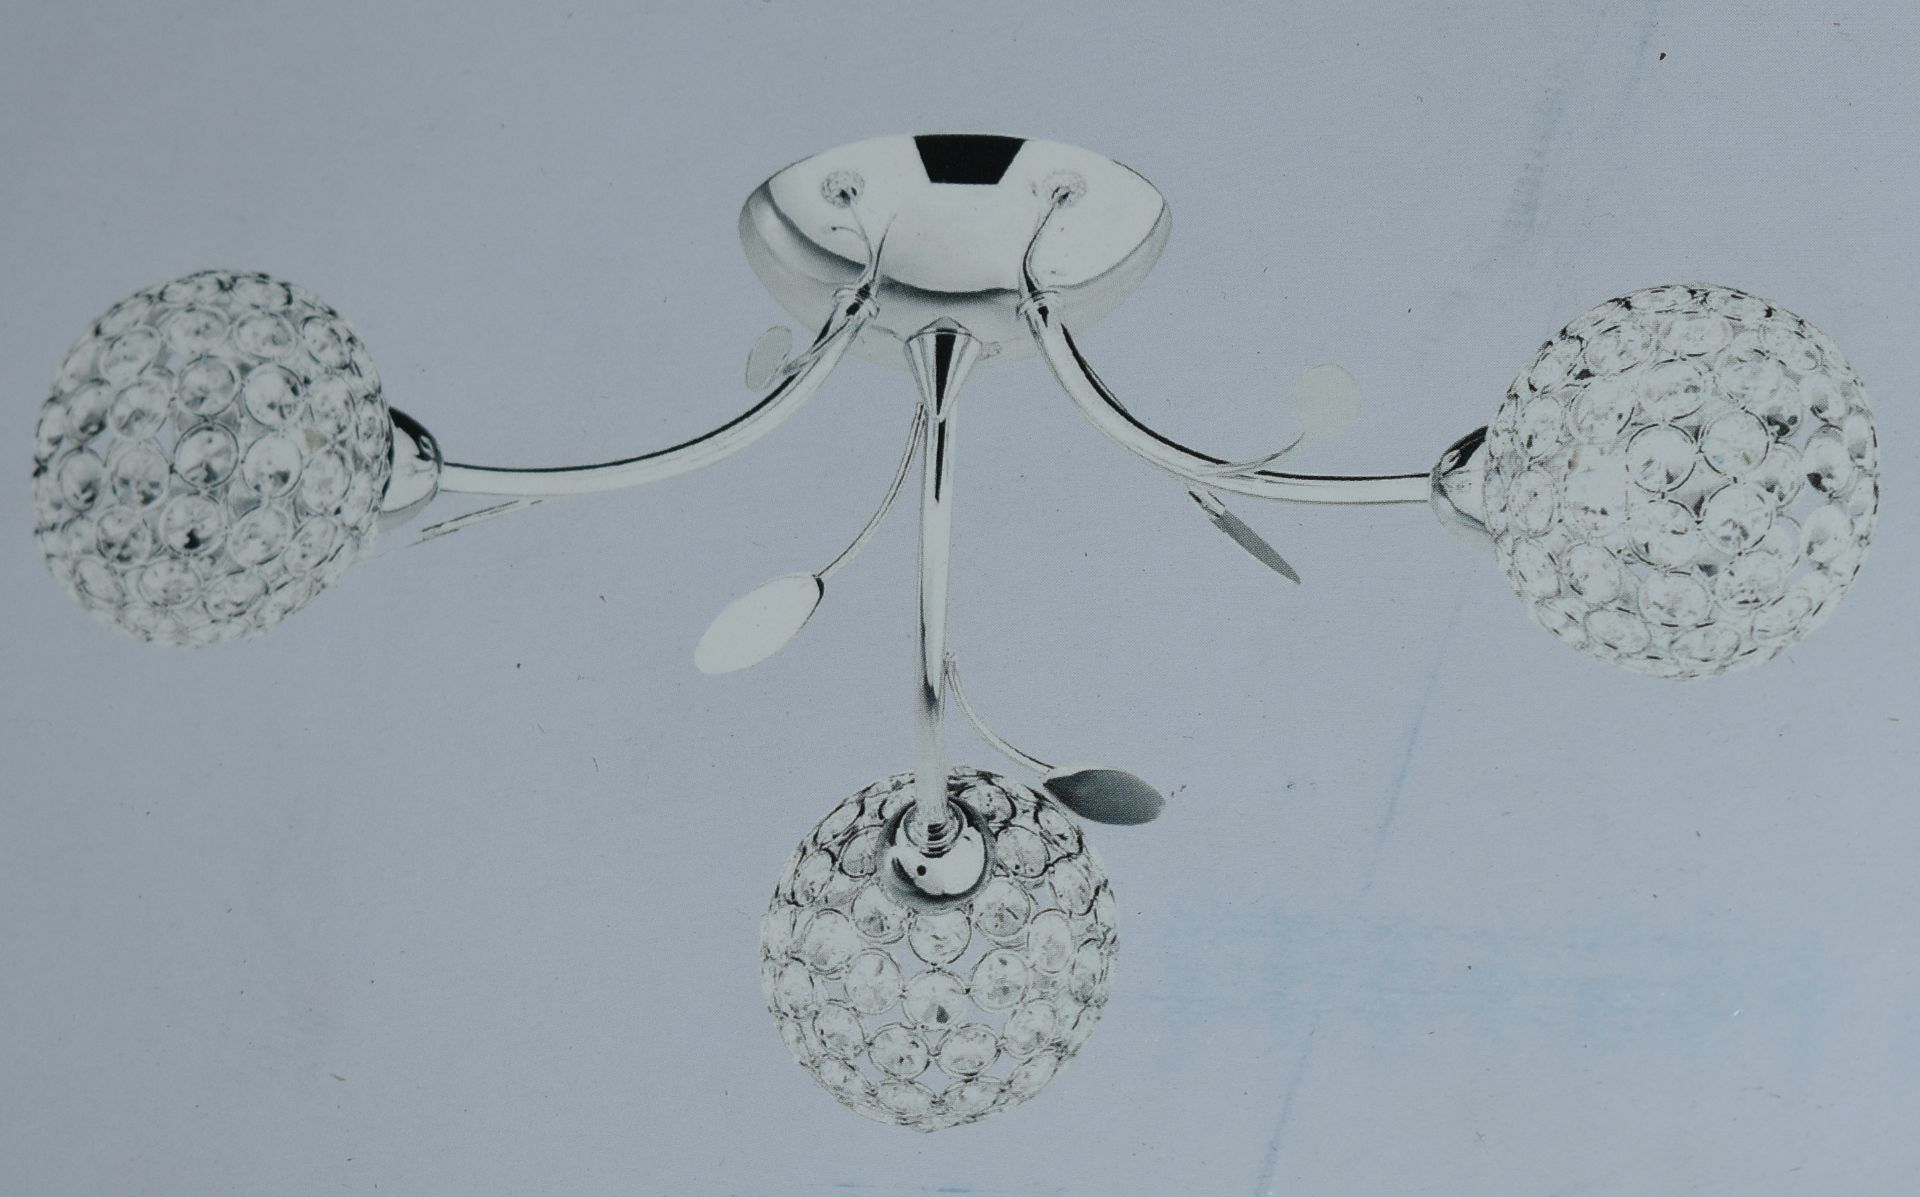 Lot 9042 - 2 x Bellis II Semi Flush Ceiling Lights - Chrome Finish With Sphere Shades and Crystal Glass Buttons